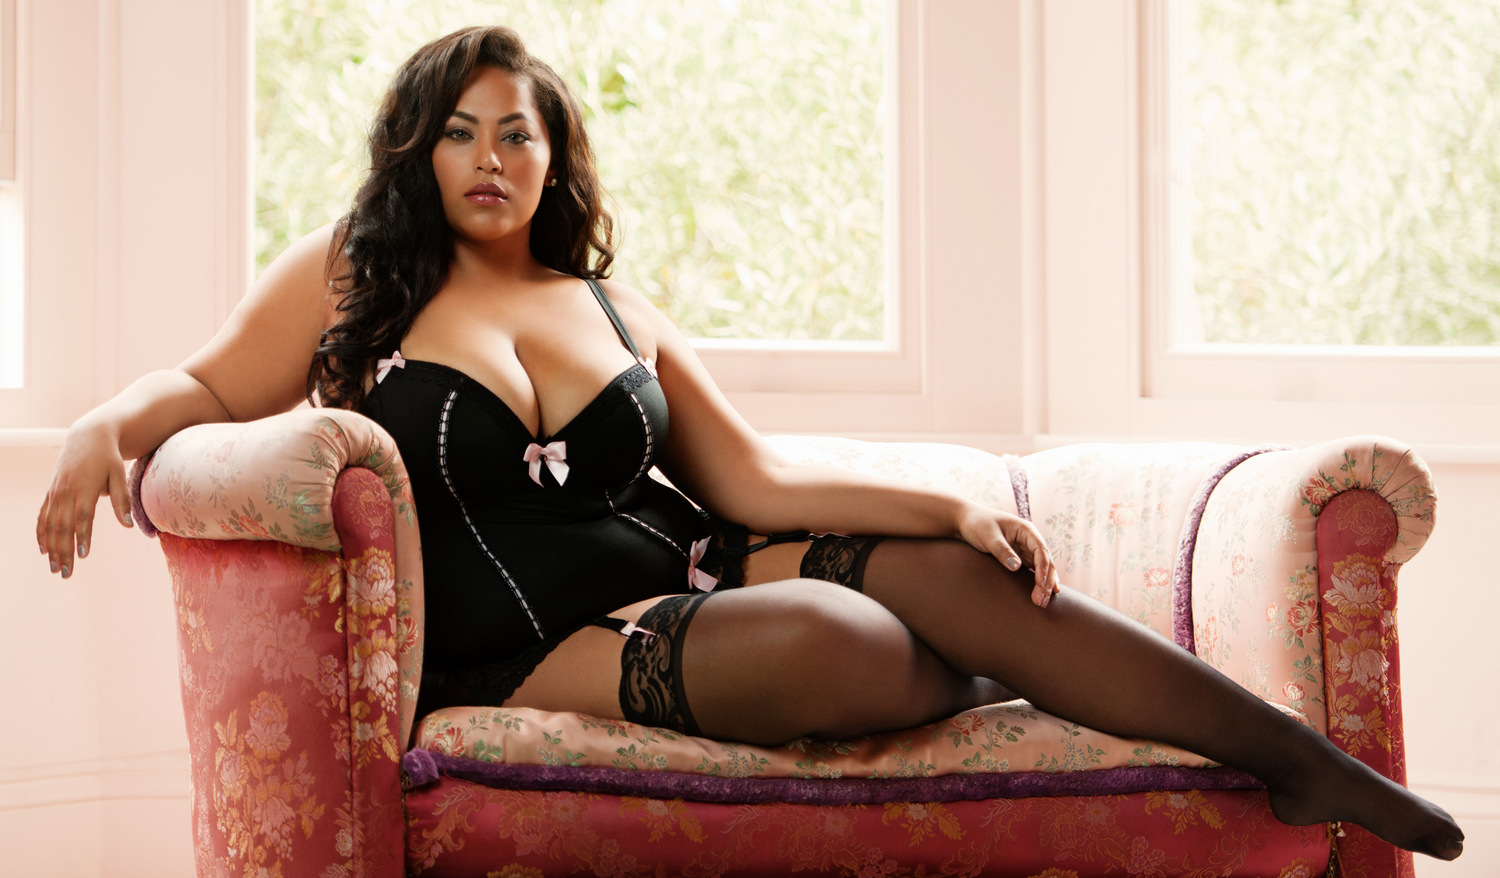 Lovehoney Launches Plus Size Lingerie Collections- Seduce Me